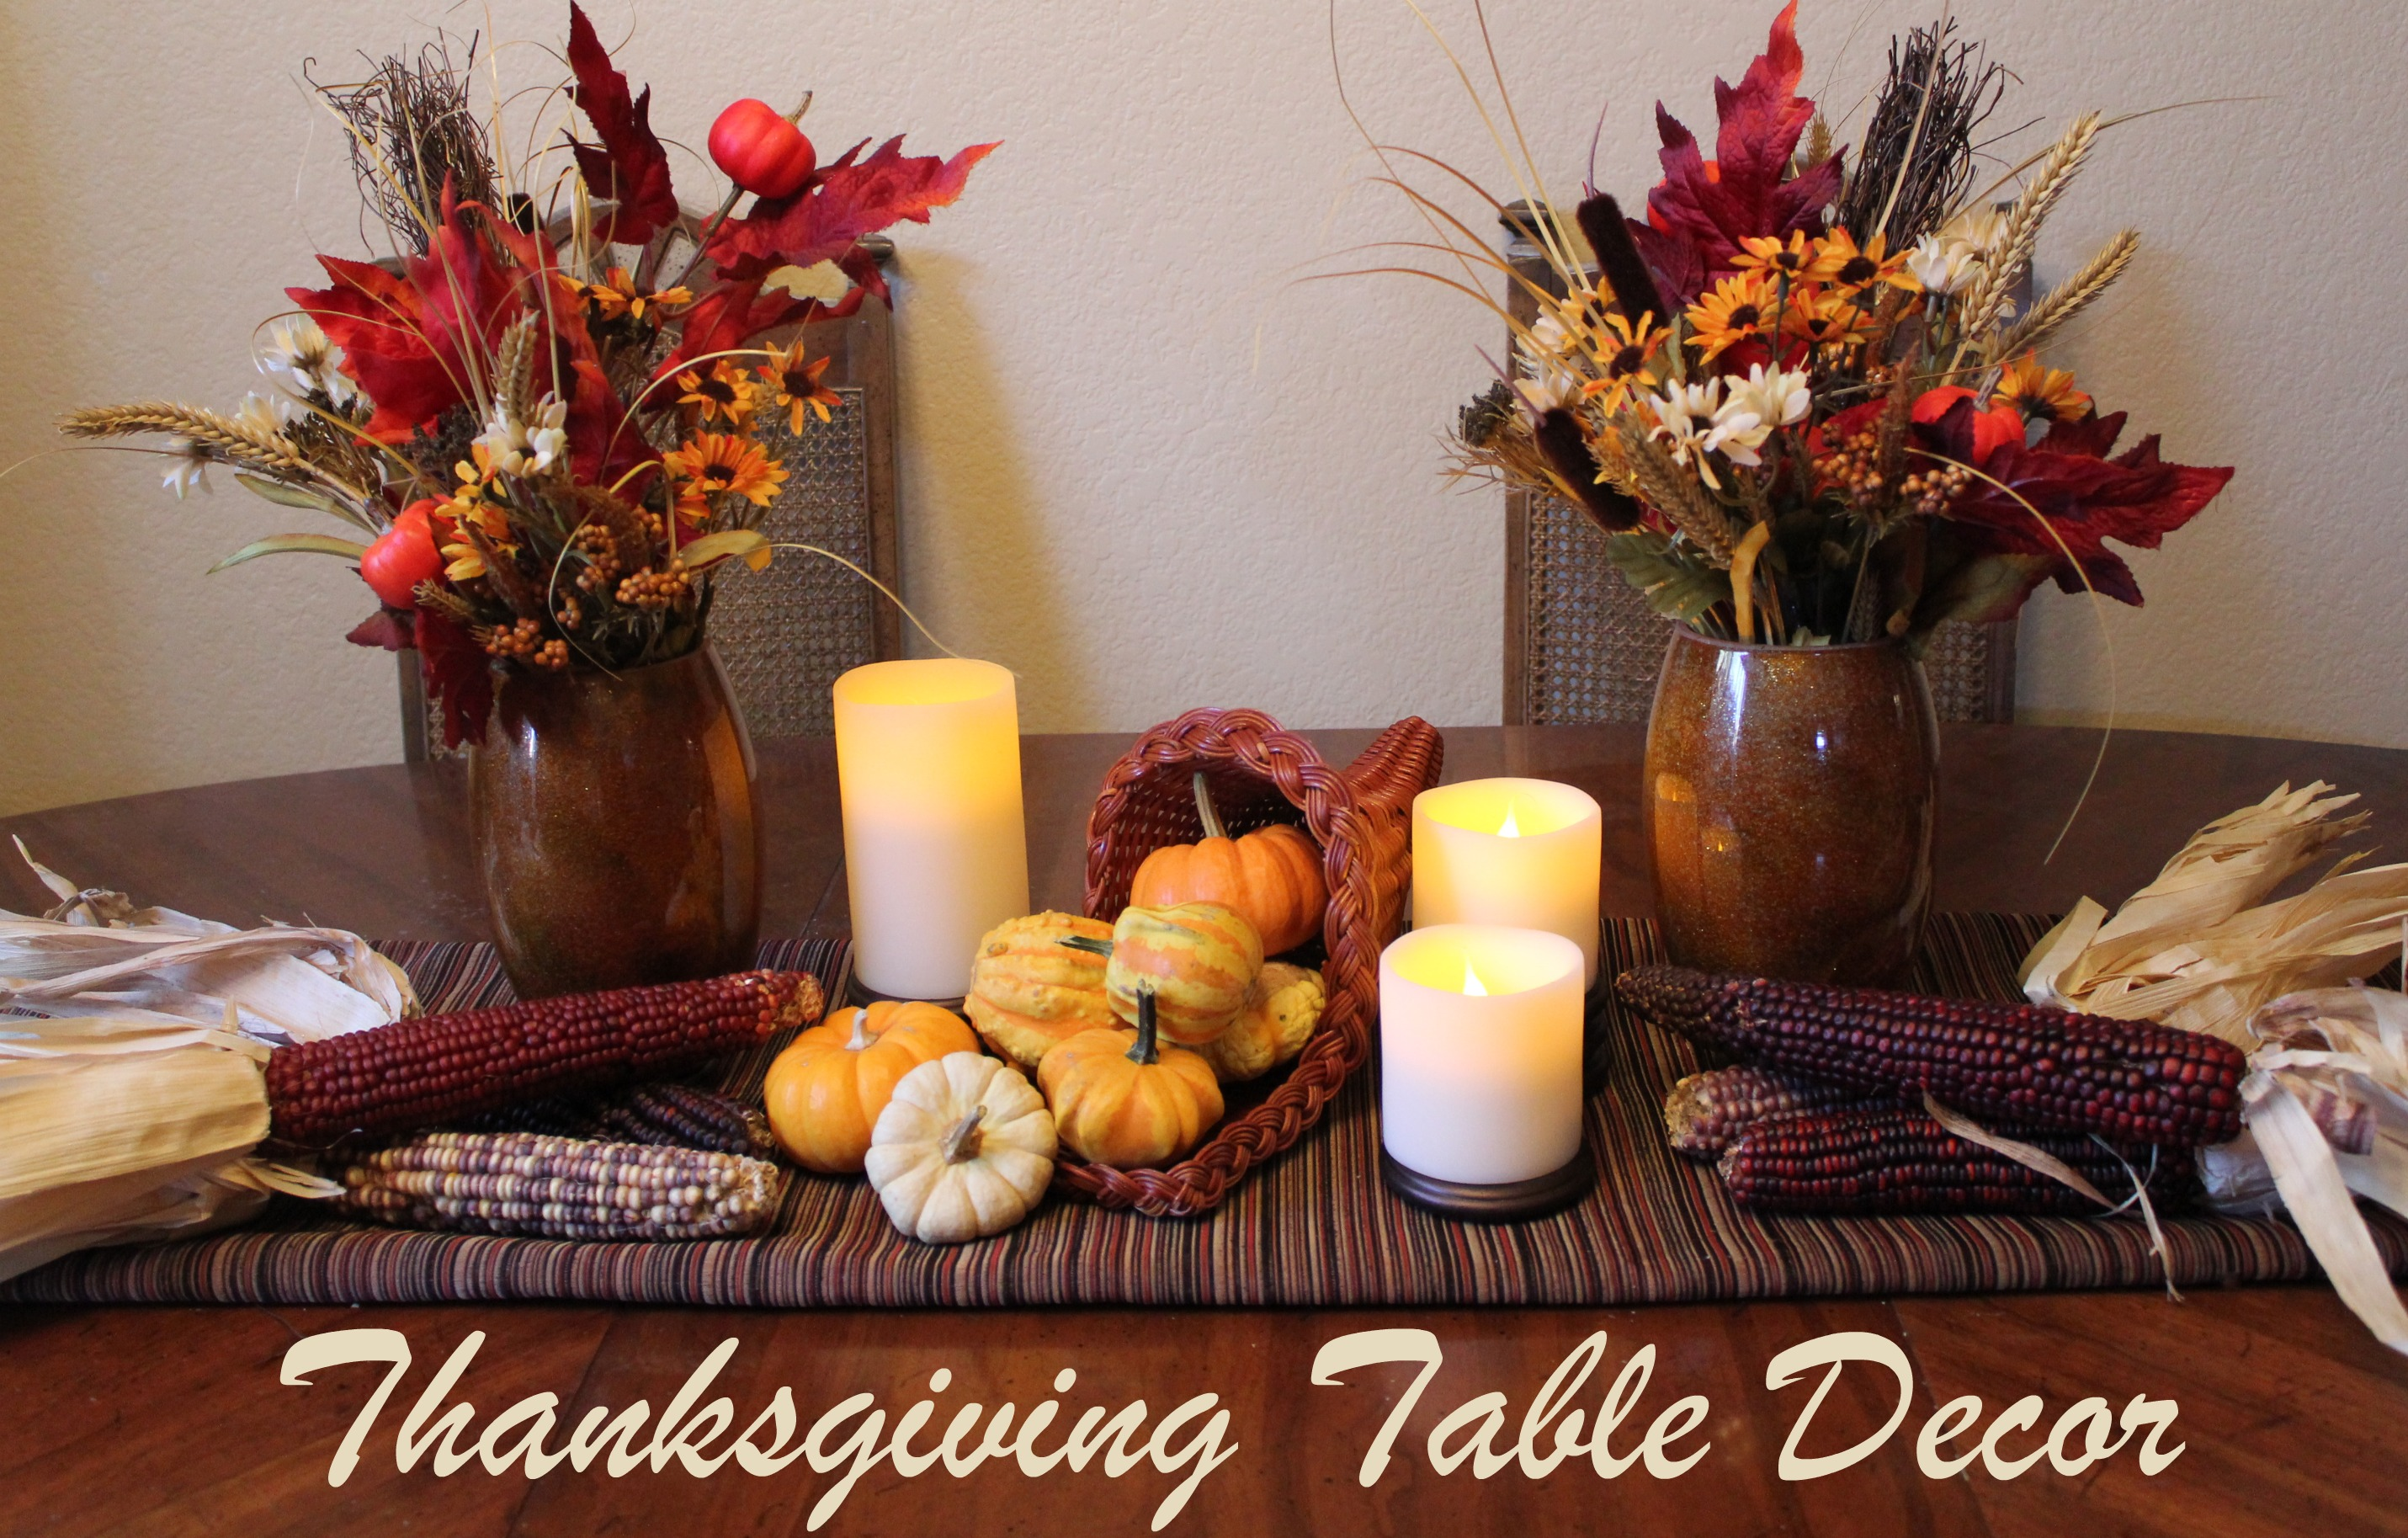 Table Decor Cornucopia Of Creativity Diy Thanksgiving Table Decor